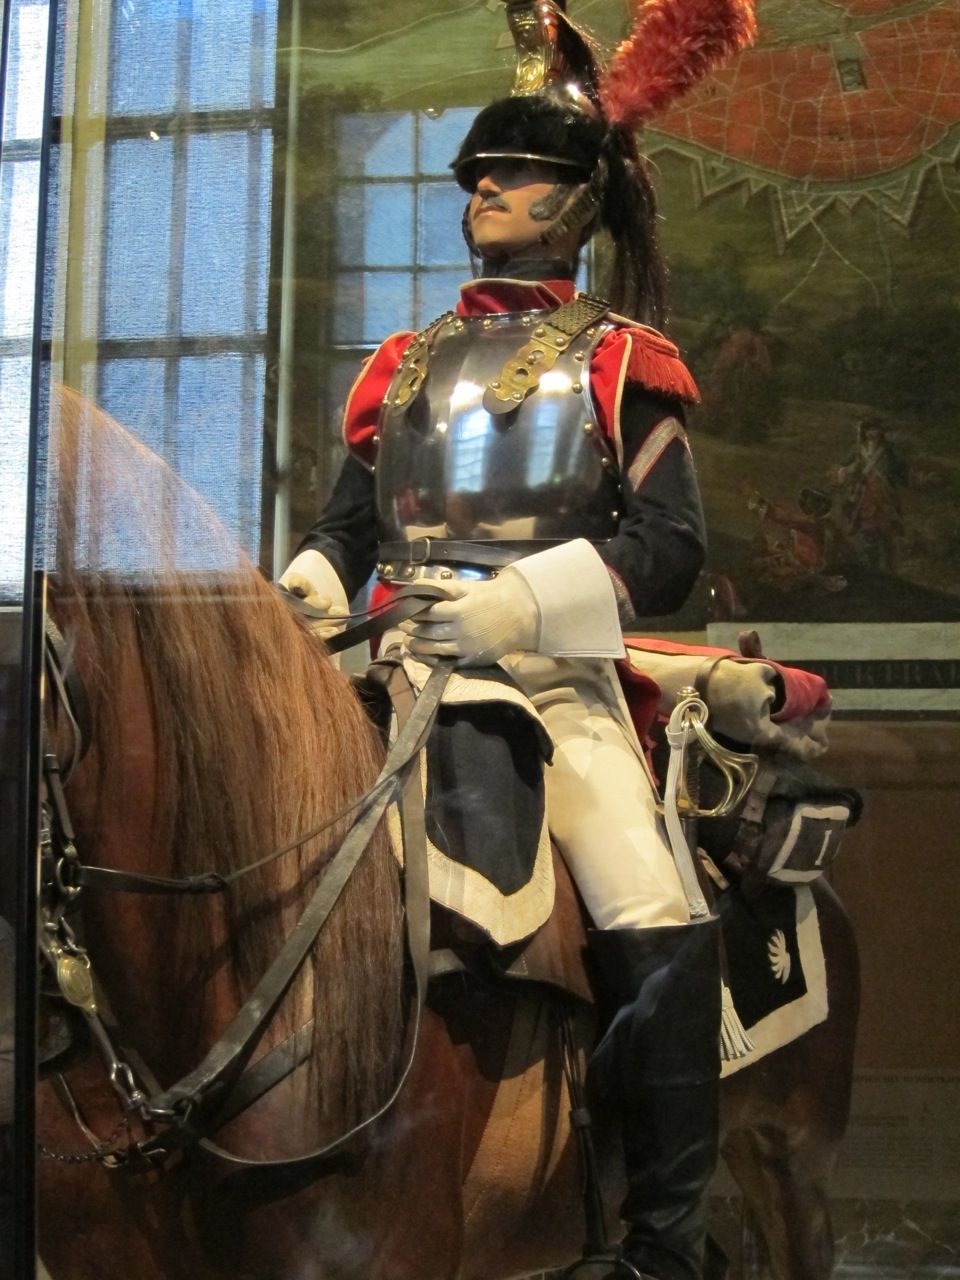 Marshal Lannes uniform | Lord Ashram's House of War: Photos from Musee de L'Armee in Paris!